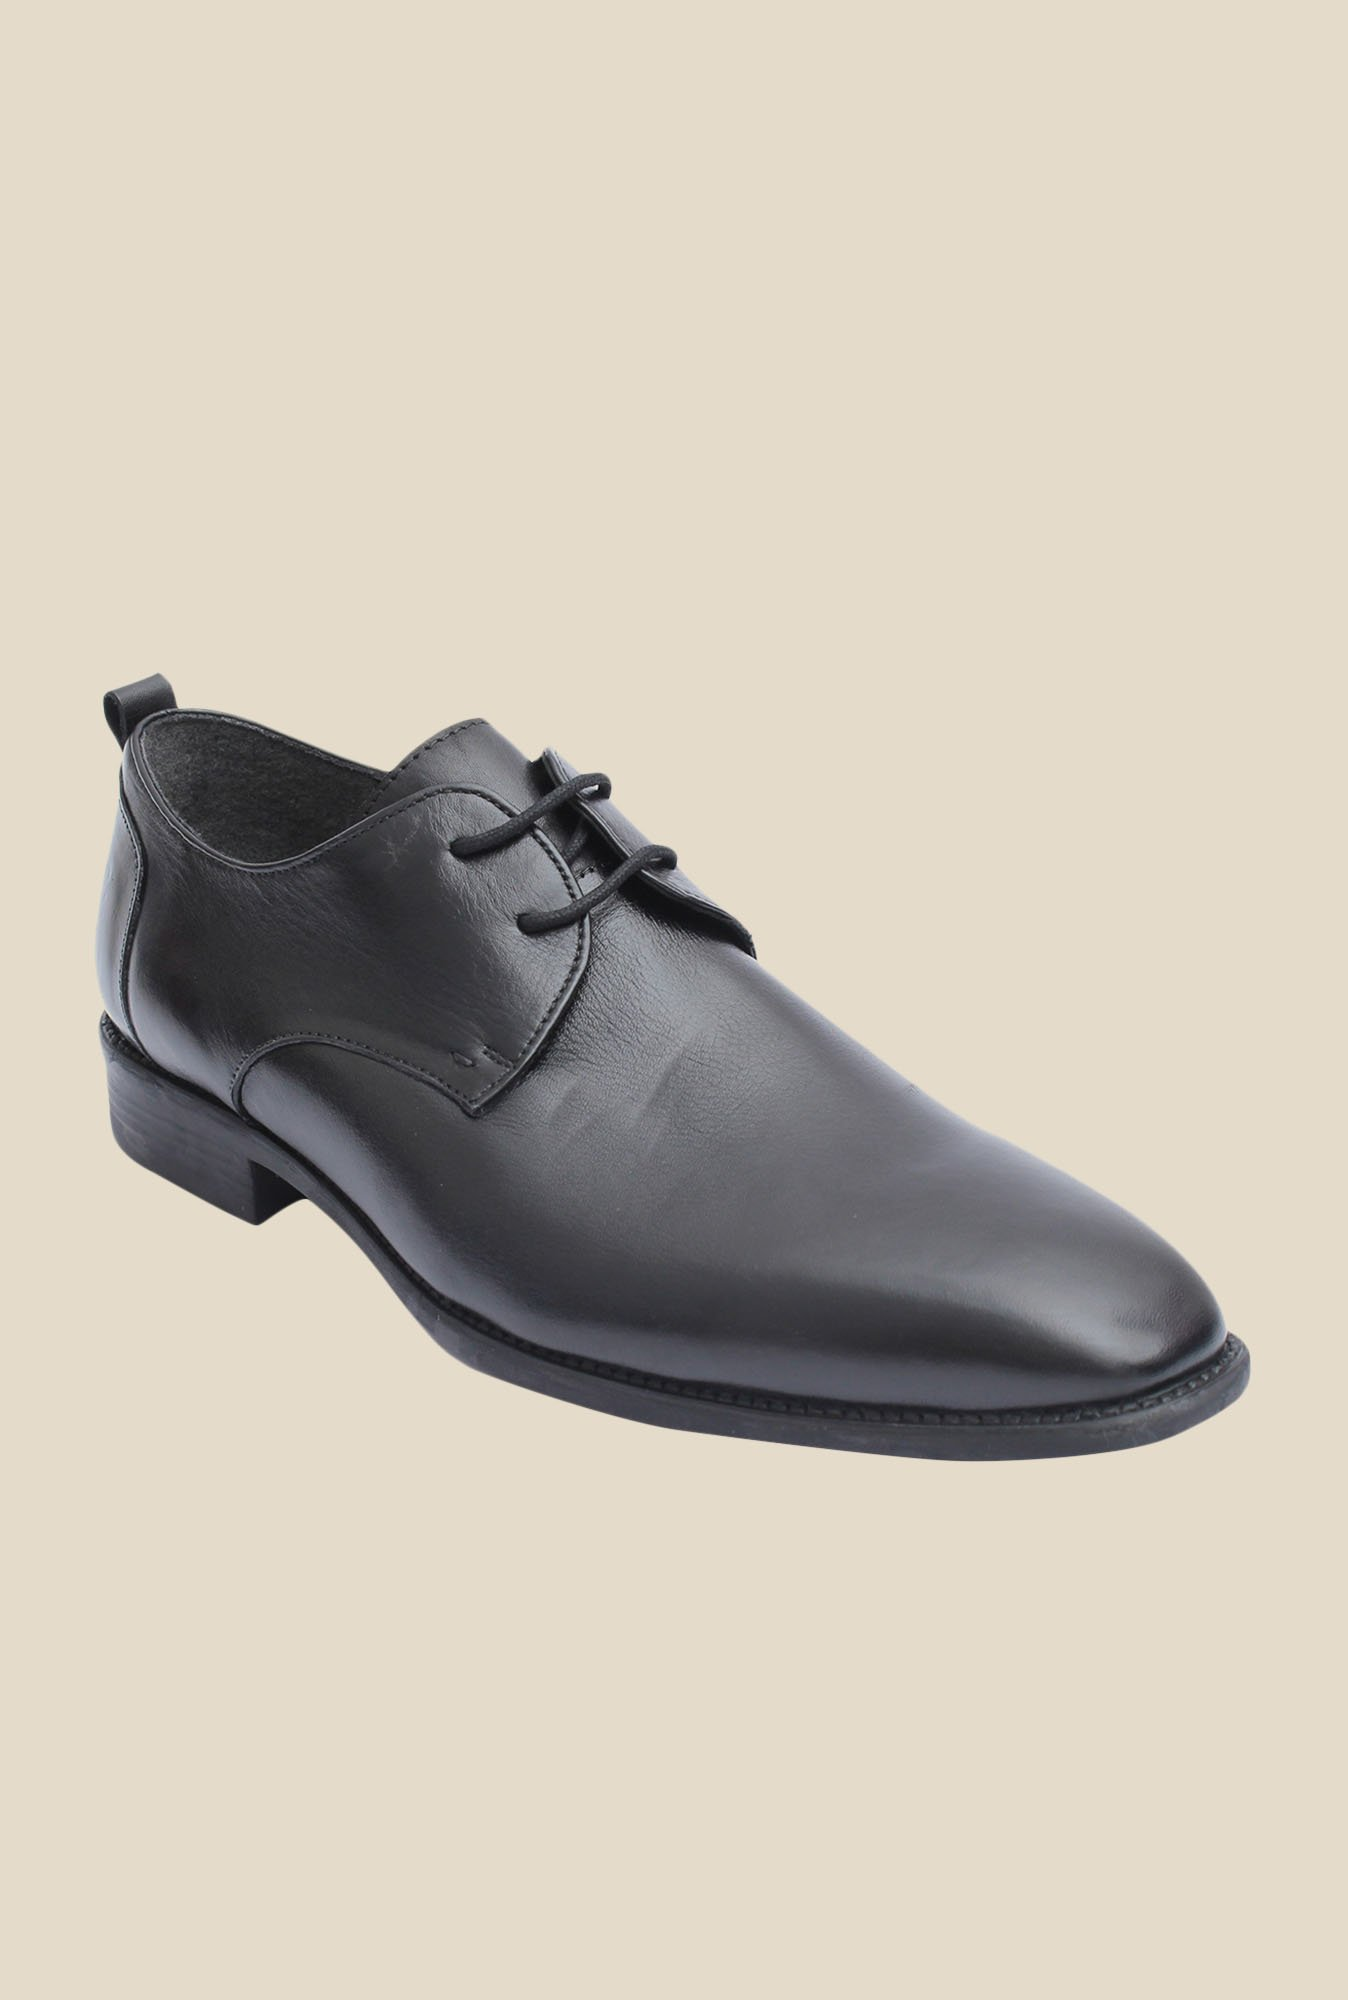 Salt 'n' Pepper Figo Black Derby Shoes